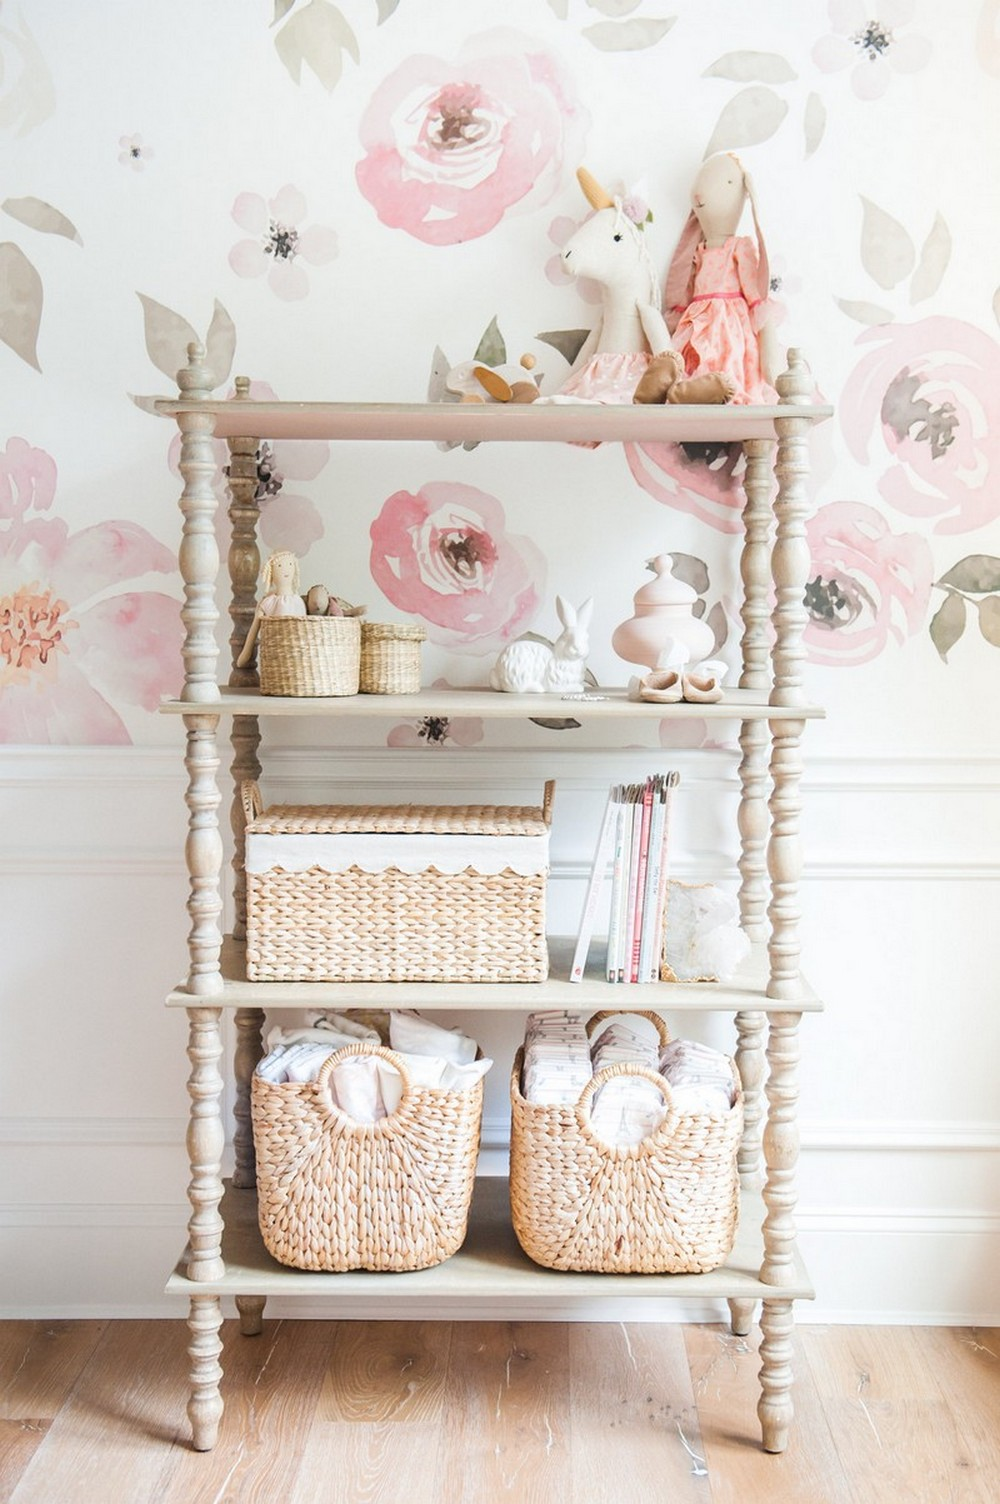 CovetED Shows The 2019 Trends For Spring Inspired Kid's Bedroom Decor Kid's Bedroom Decor CovetED Shows The 2019 Trends For Spring Inspired Kid's Bedroom Decor CovetED Shows The 2019 Trends For Spring Inspired Kids Bedroom Decor 3